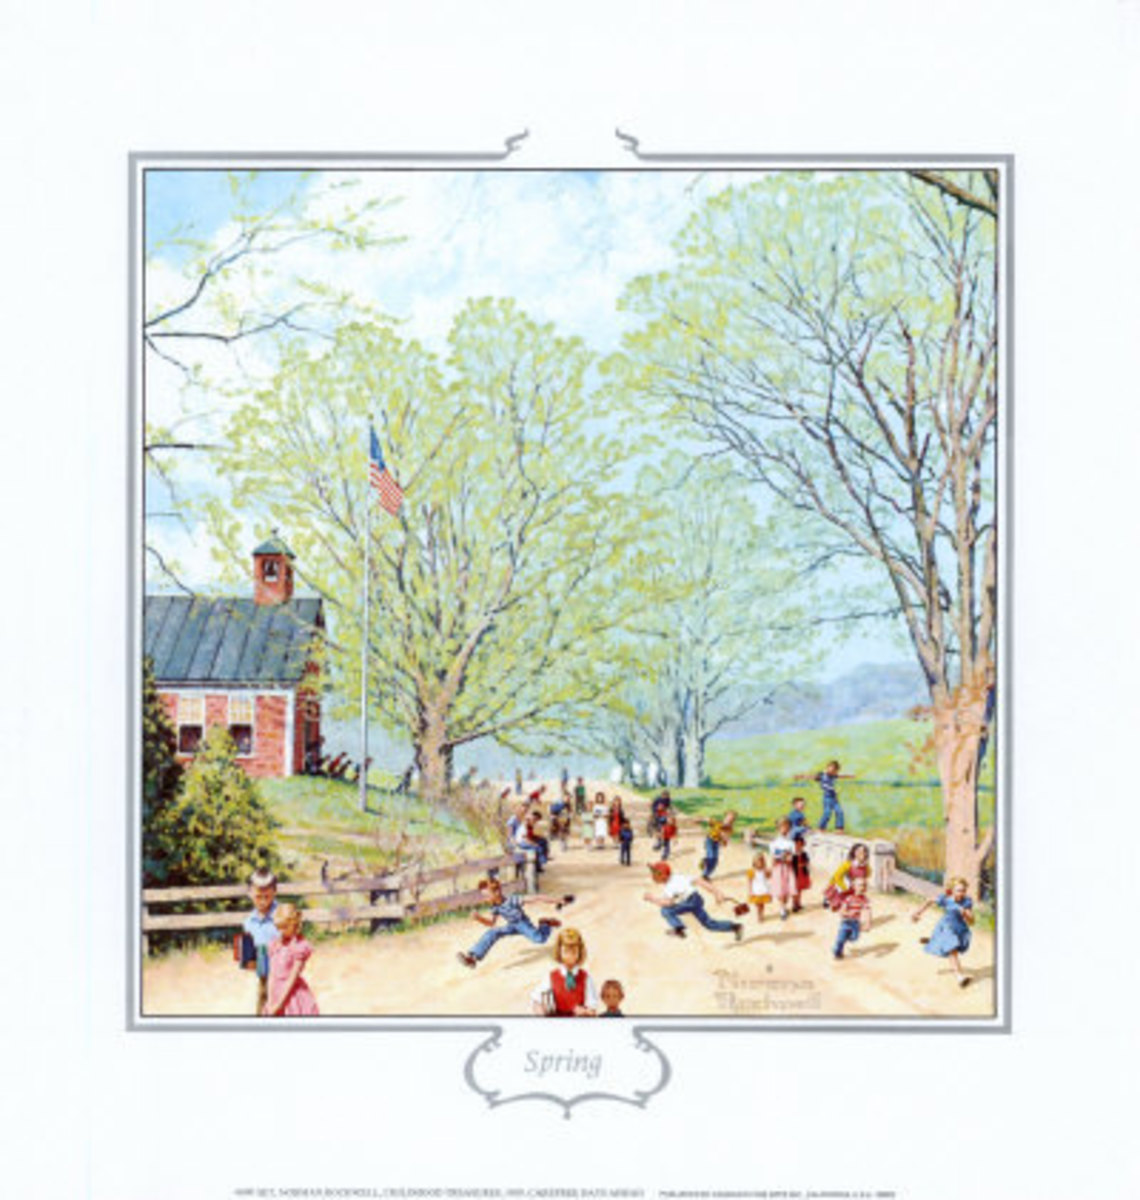 """""""Carefree Days Ahead"""" Art Poster Print by Norman Rockwell - When the school bell rang for the last time before summer recess, we fairly shrieked as we ran home, ready to change into play clothes and hit the dusty streets"""